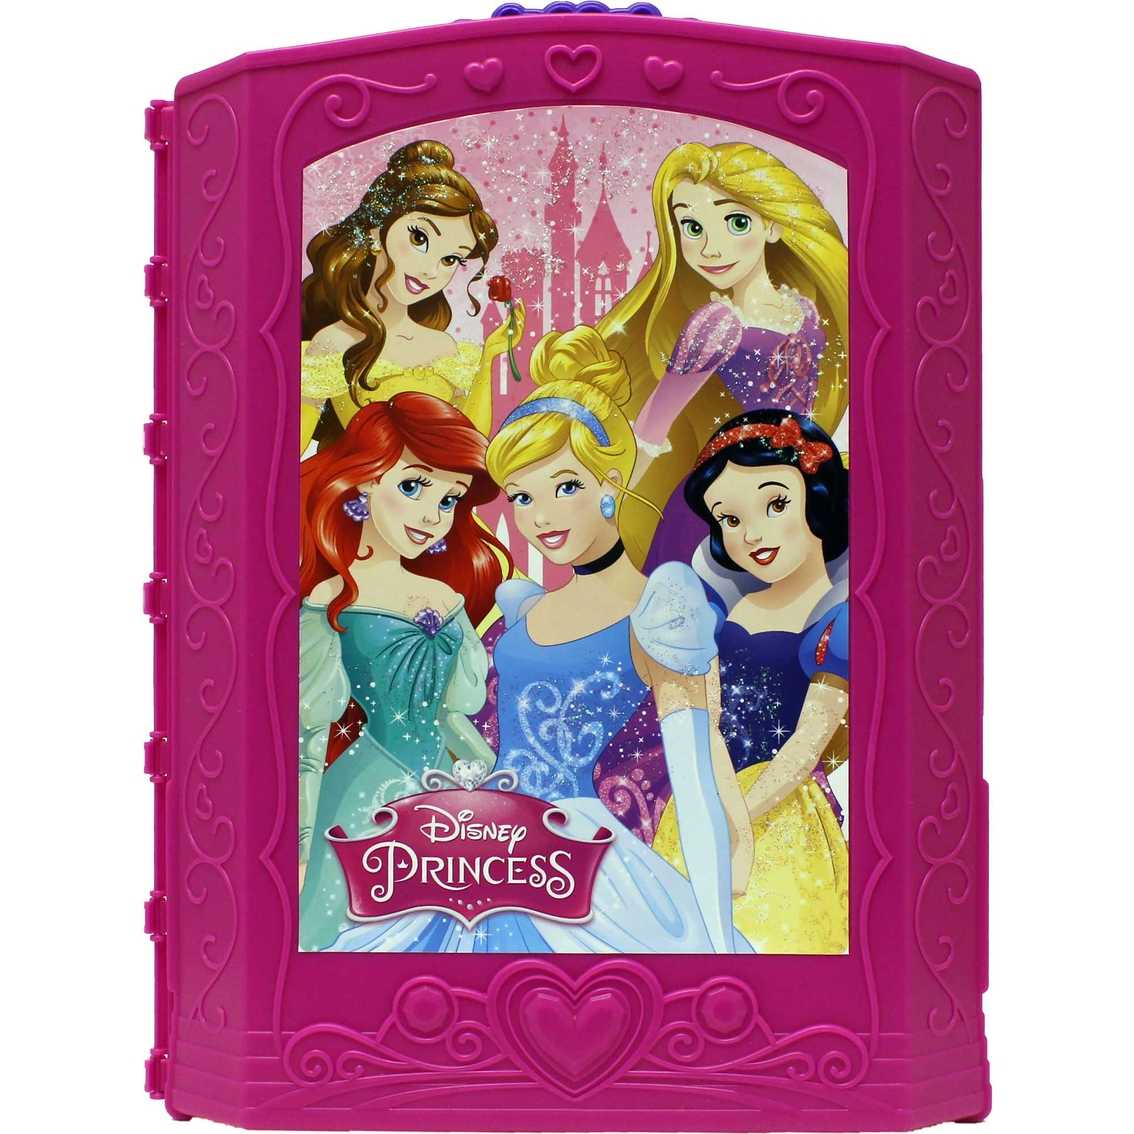 Disney Princess Toys : Disney princess doll case accessories baby toys